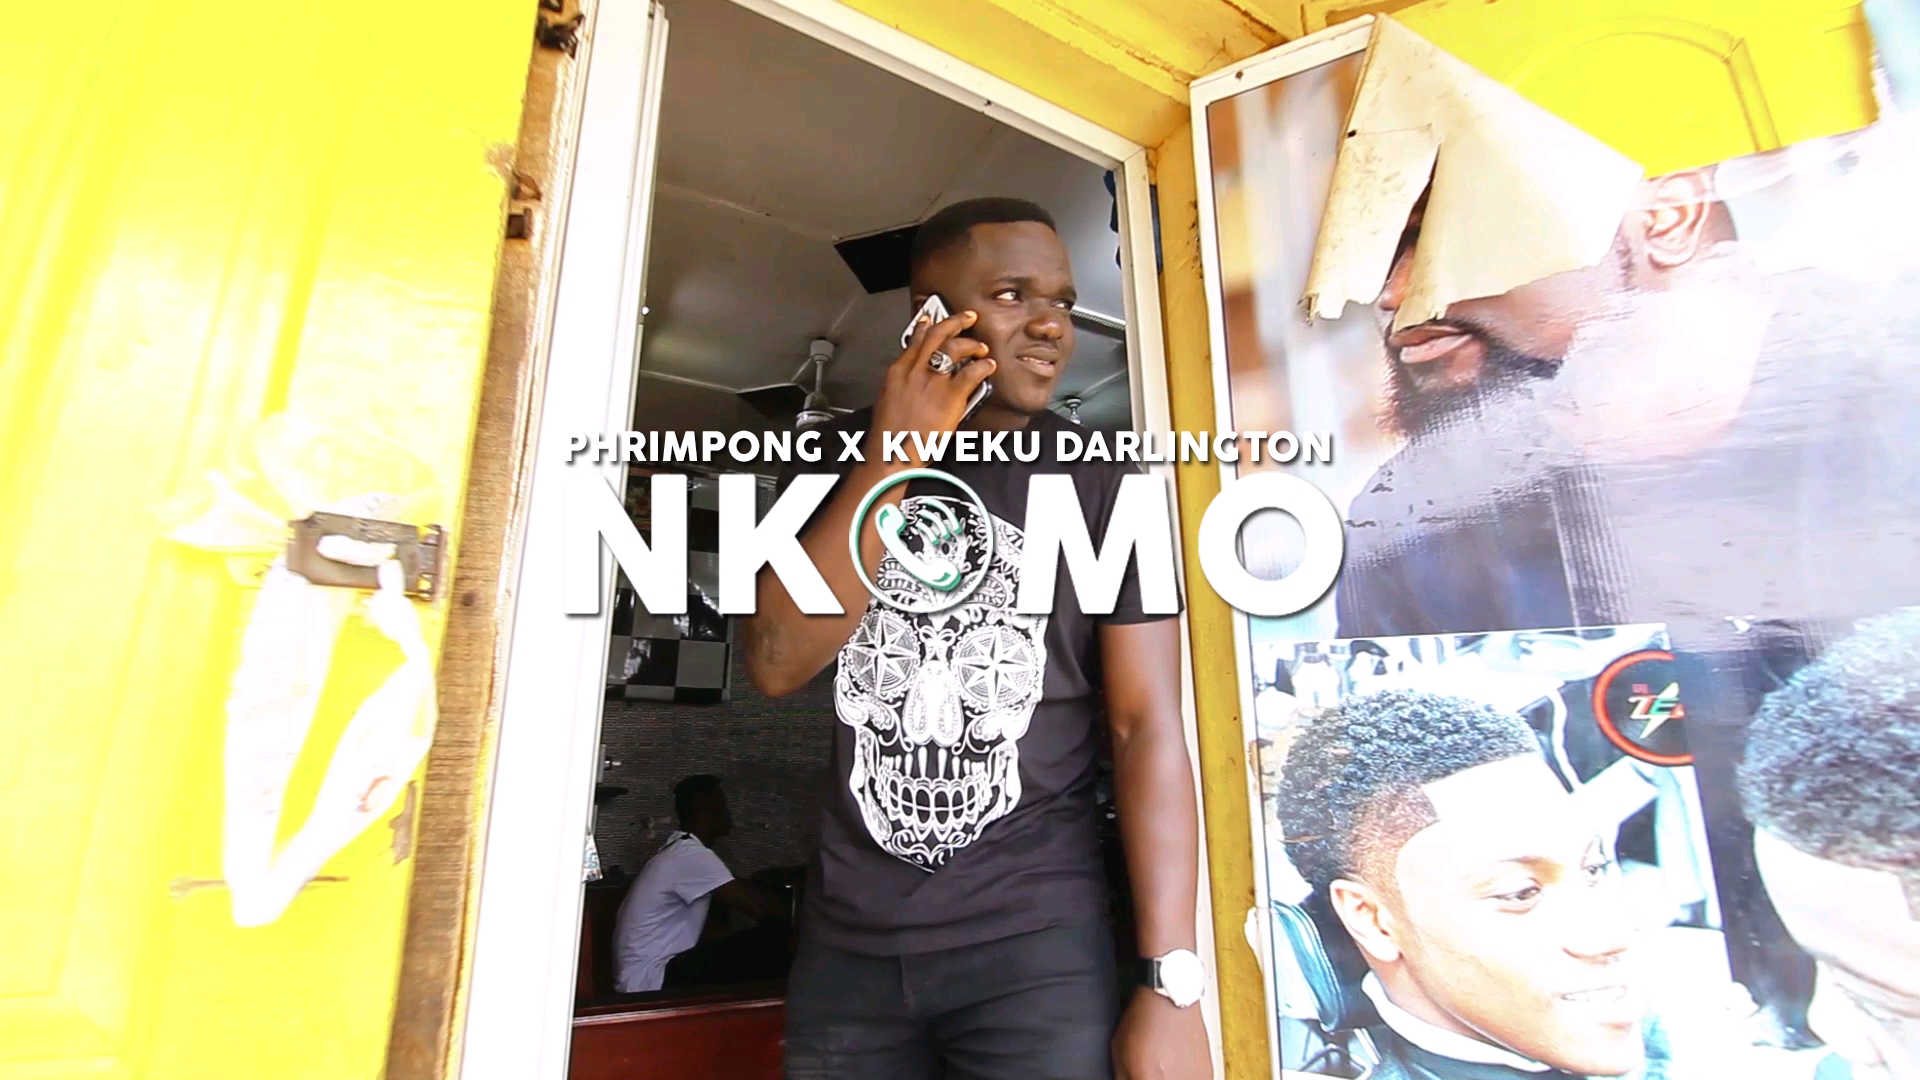 Official Video: Phrimpong - Nkomo Ft Kweku Darlington